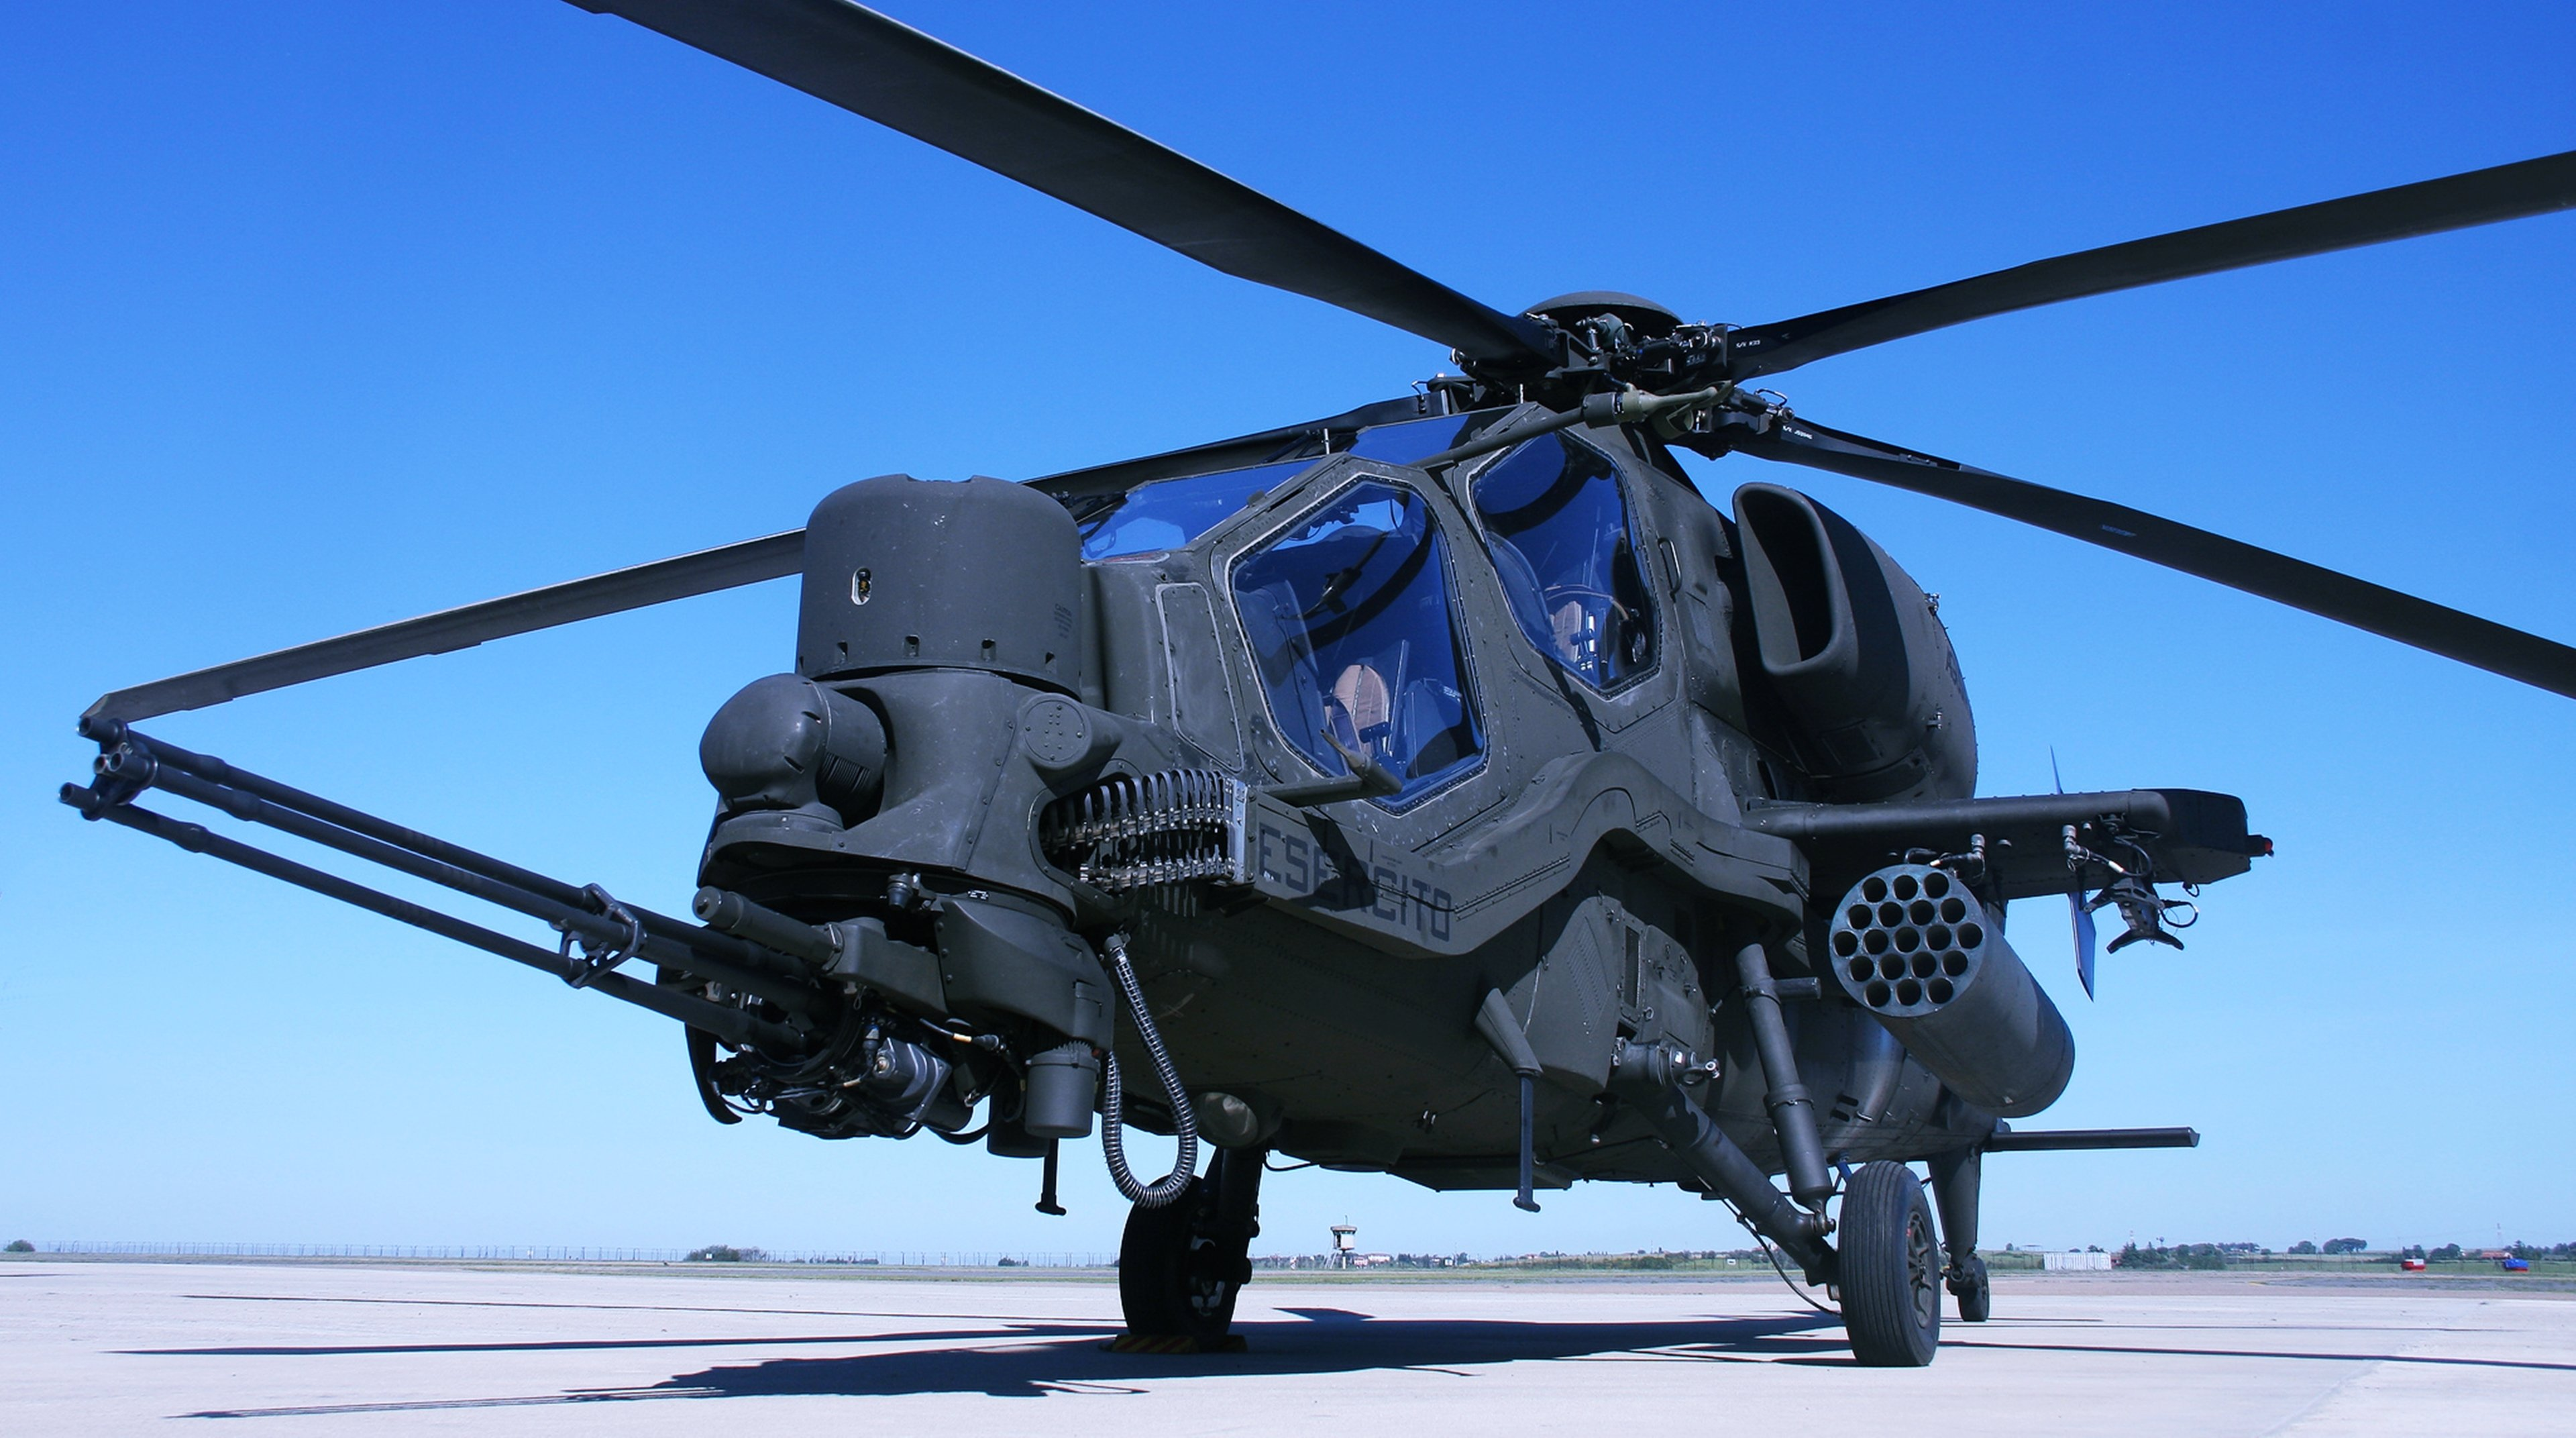 Elicottero S 64 F : Bell ah s cobra udarnyy helicopter warplane aircrafts